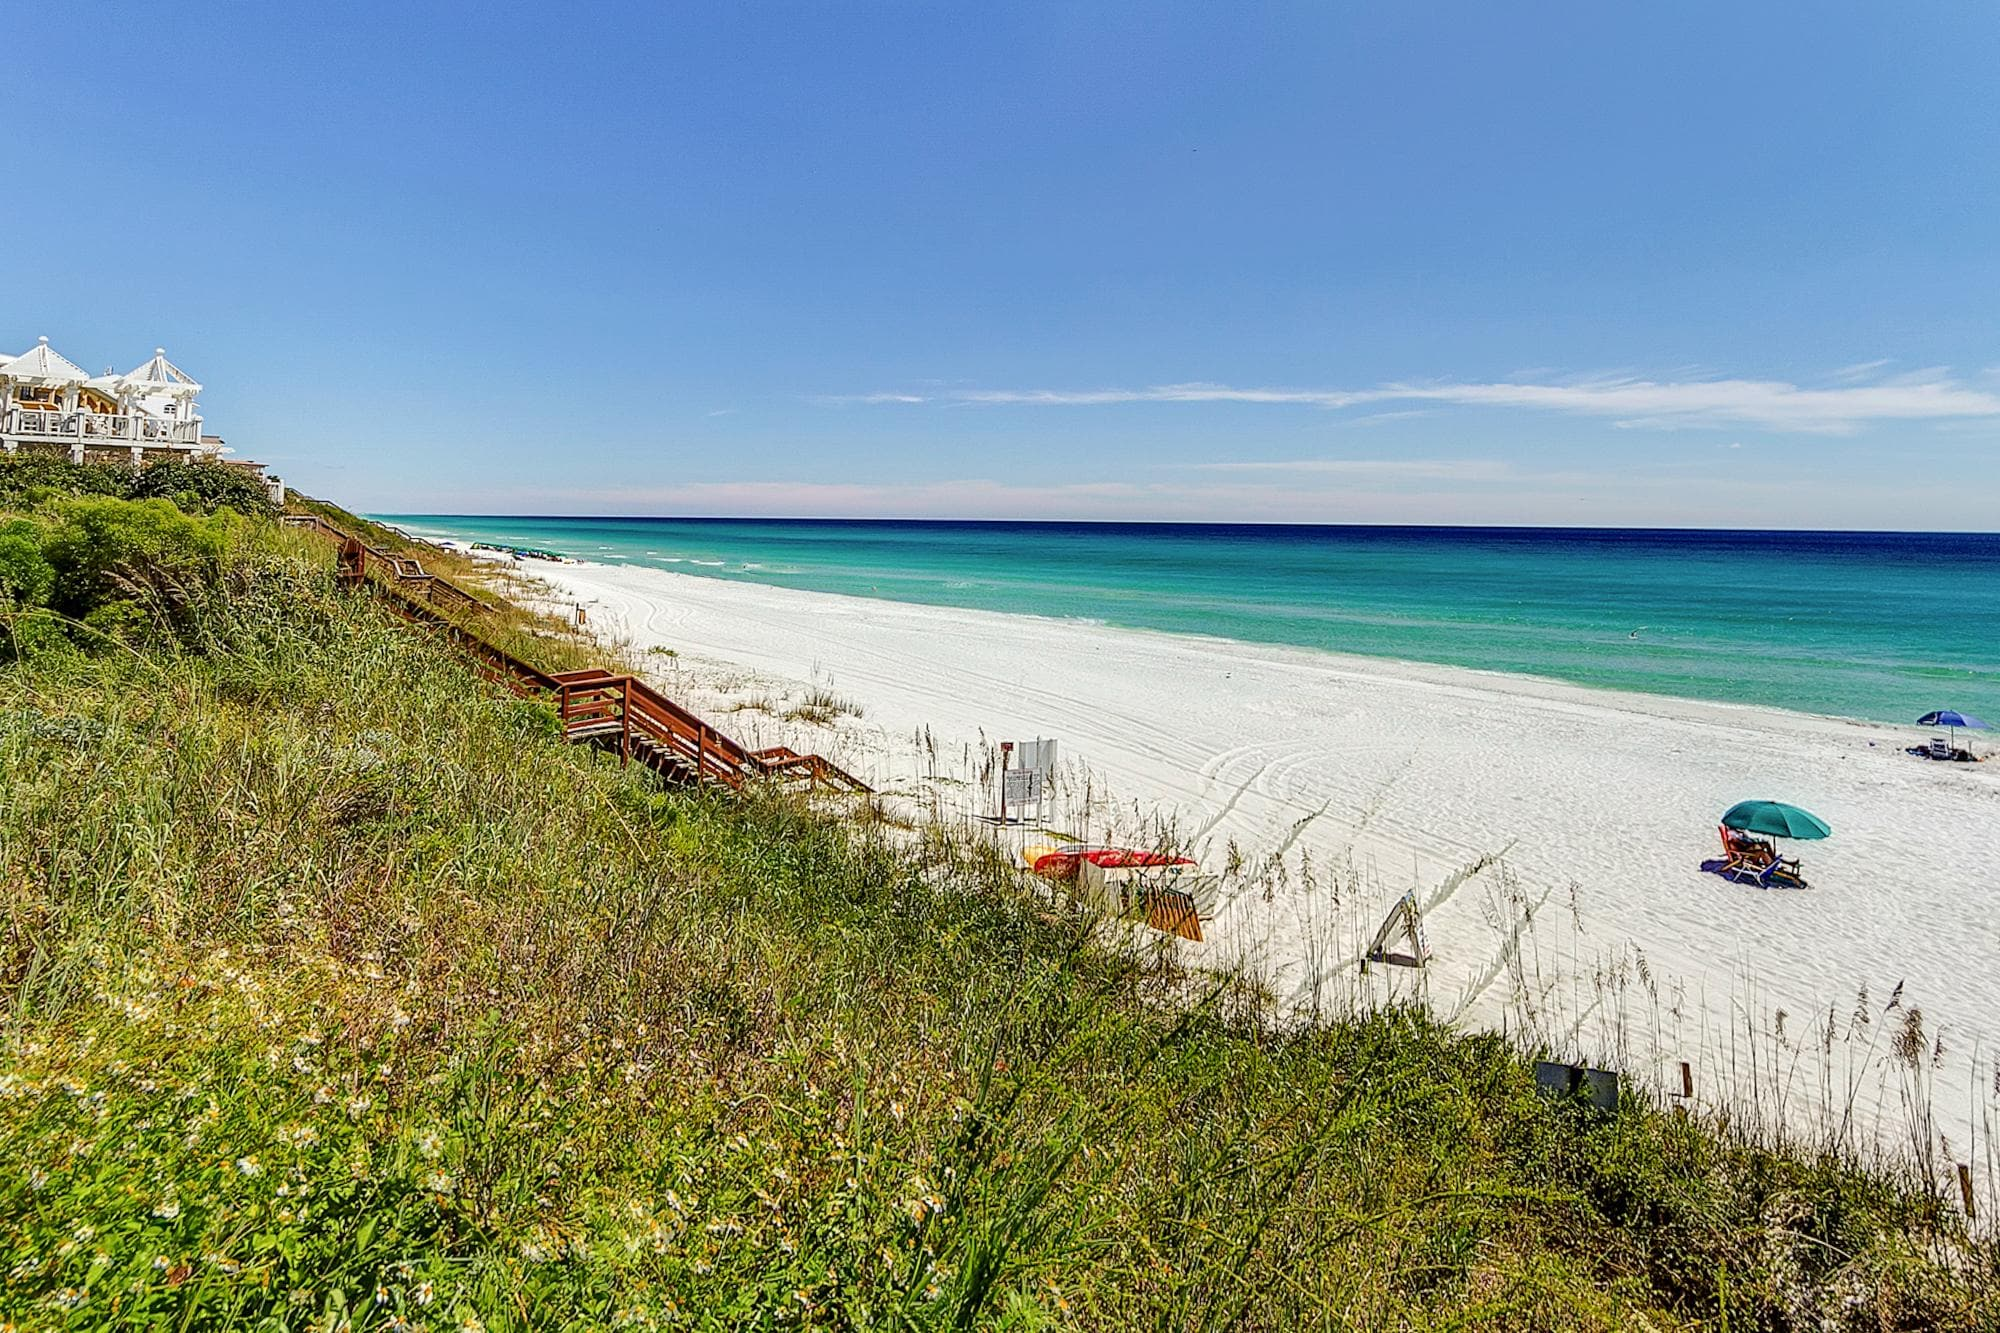 A wooden staircase from the condo complex leads to the beach and the glittering Gulf of Mexico.